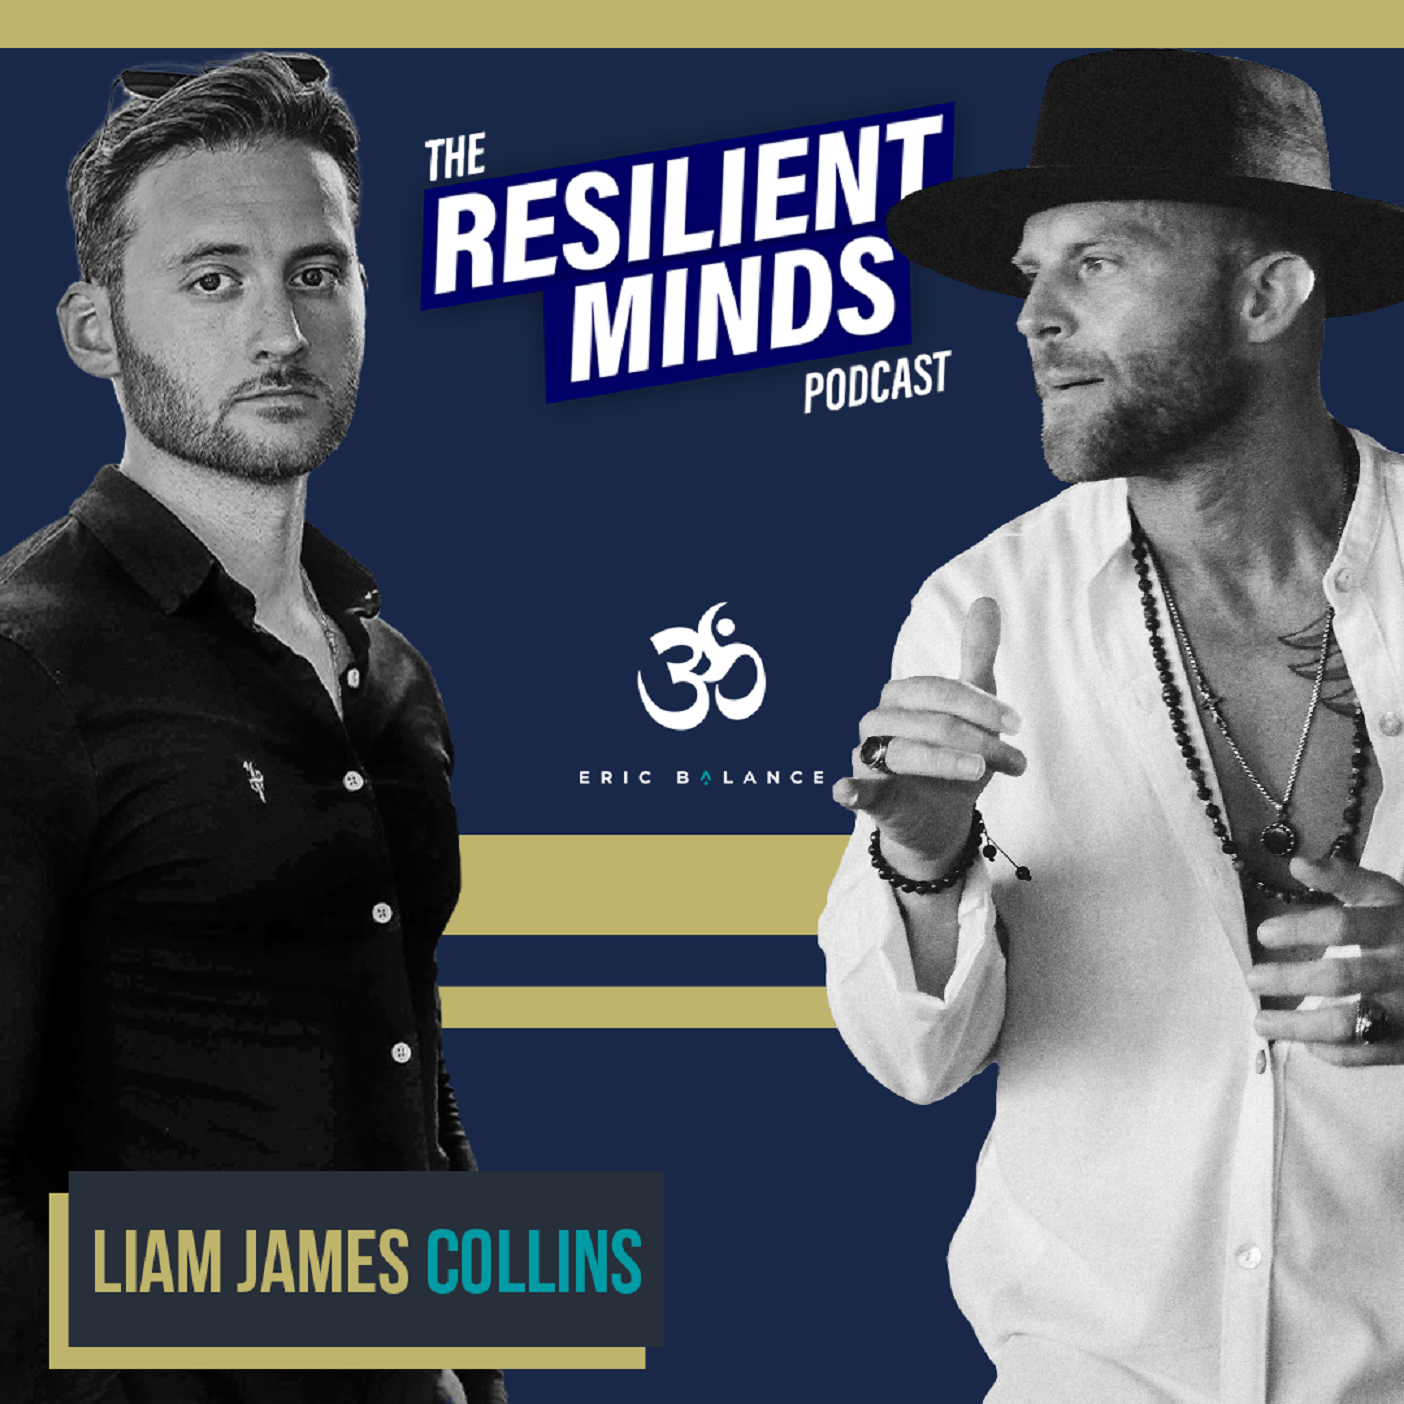 Episode 48 – How Our Terror Can Turn Into Tenacity for the Greatest Good with Liam James Collins